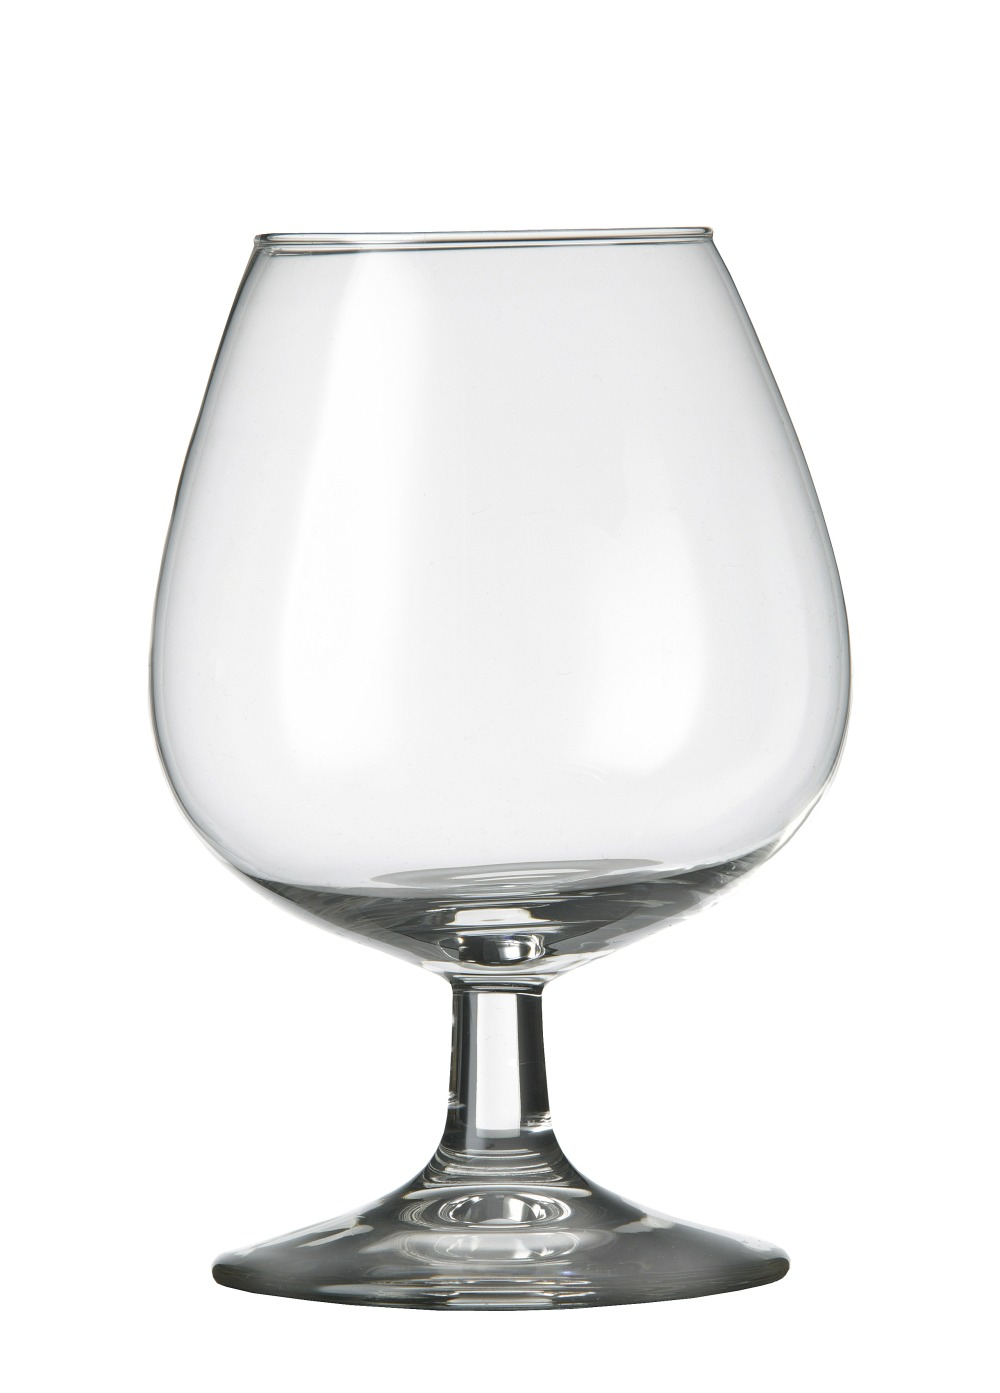 royal_leerdam_cognacglas_specials_37cl.jpg